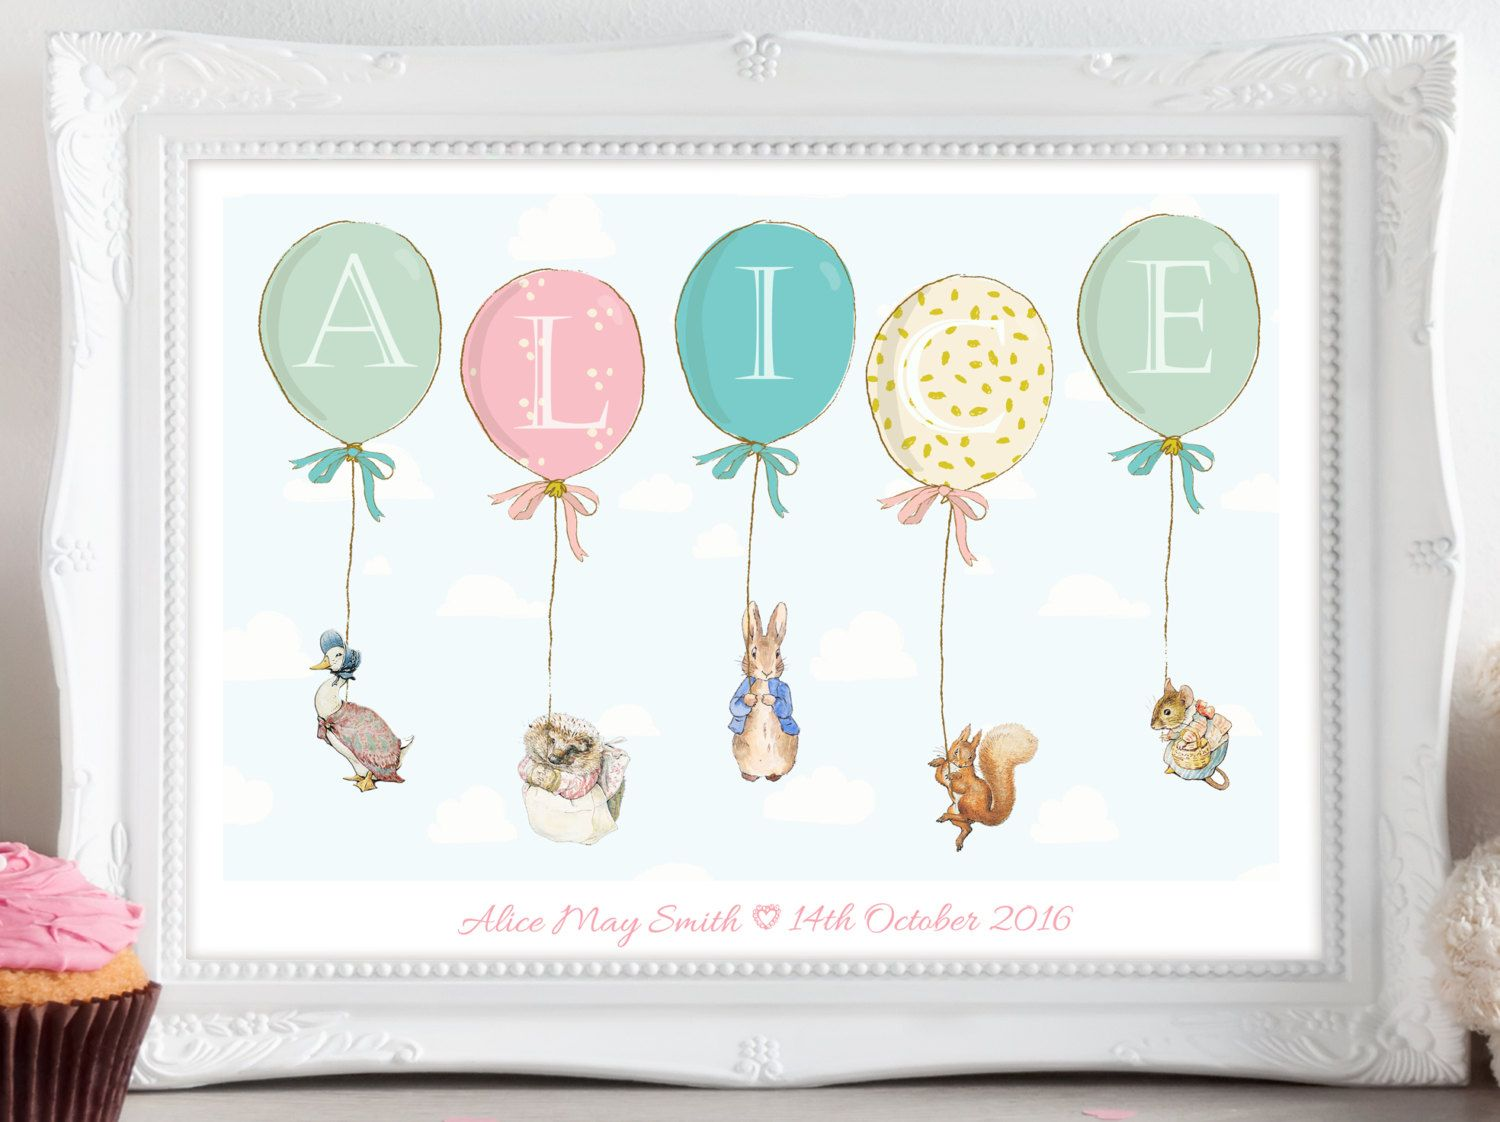 personalised new baby boy girl peter rabbit nursery birth name personalised peter rabbit beatrix potter balloon print picture christening birthday gift present for baby nursery wall art unframed by daisyanddoodles on